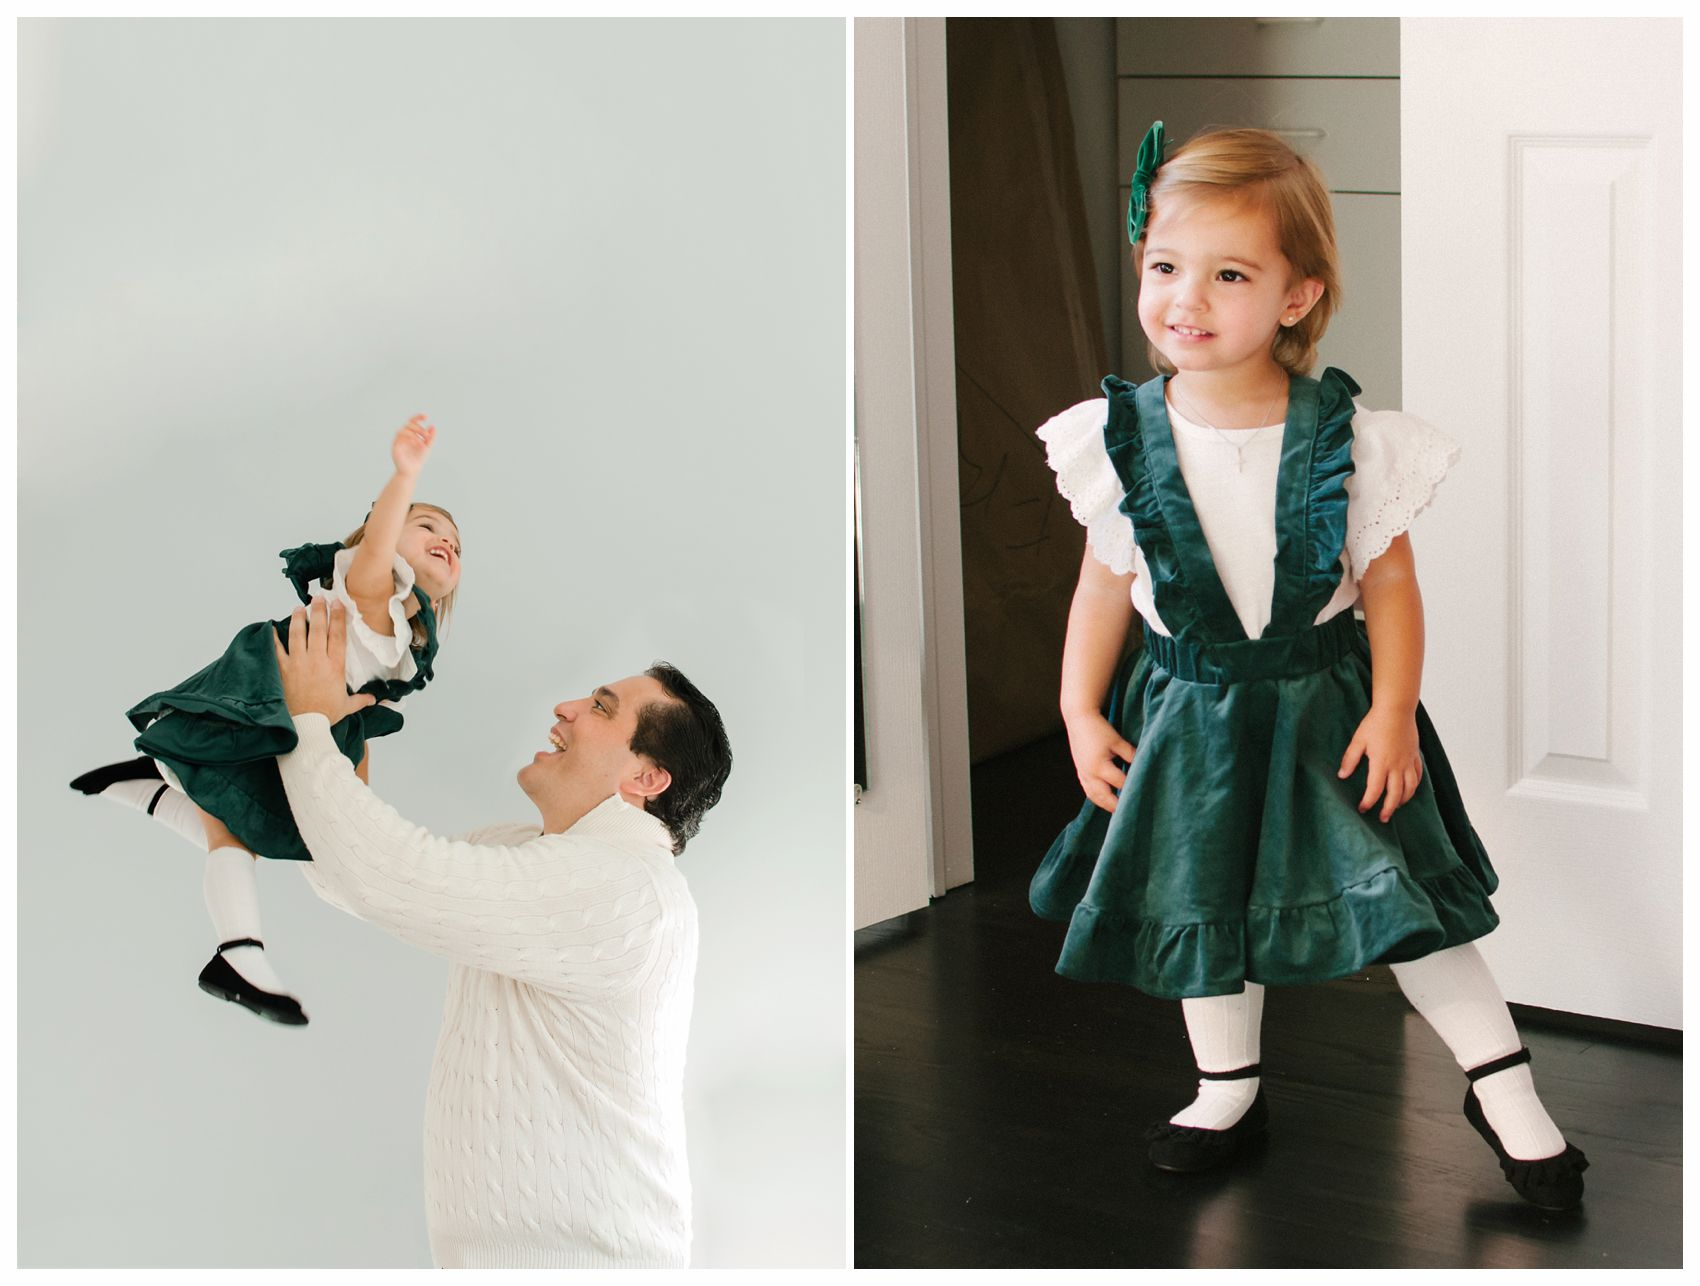 little girl is looking all grown up in her green holiday dress and playing airplane with dad